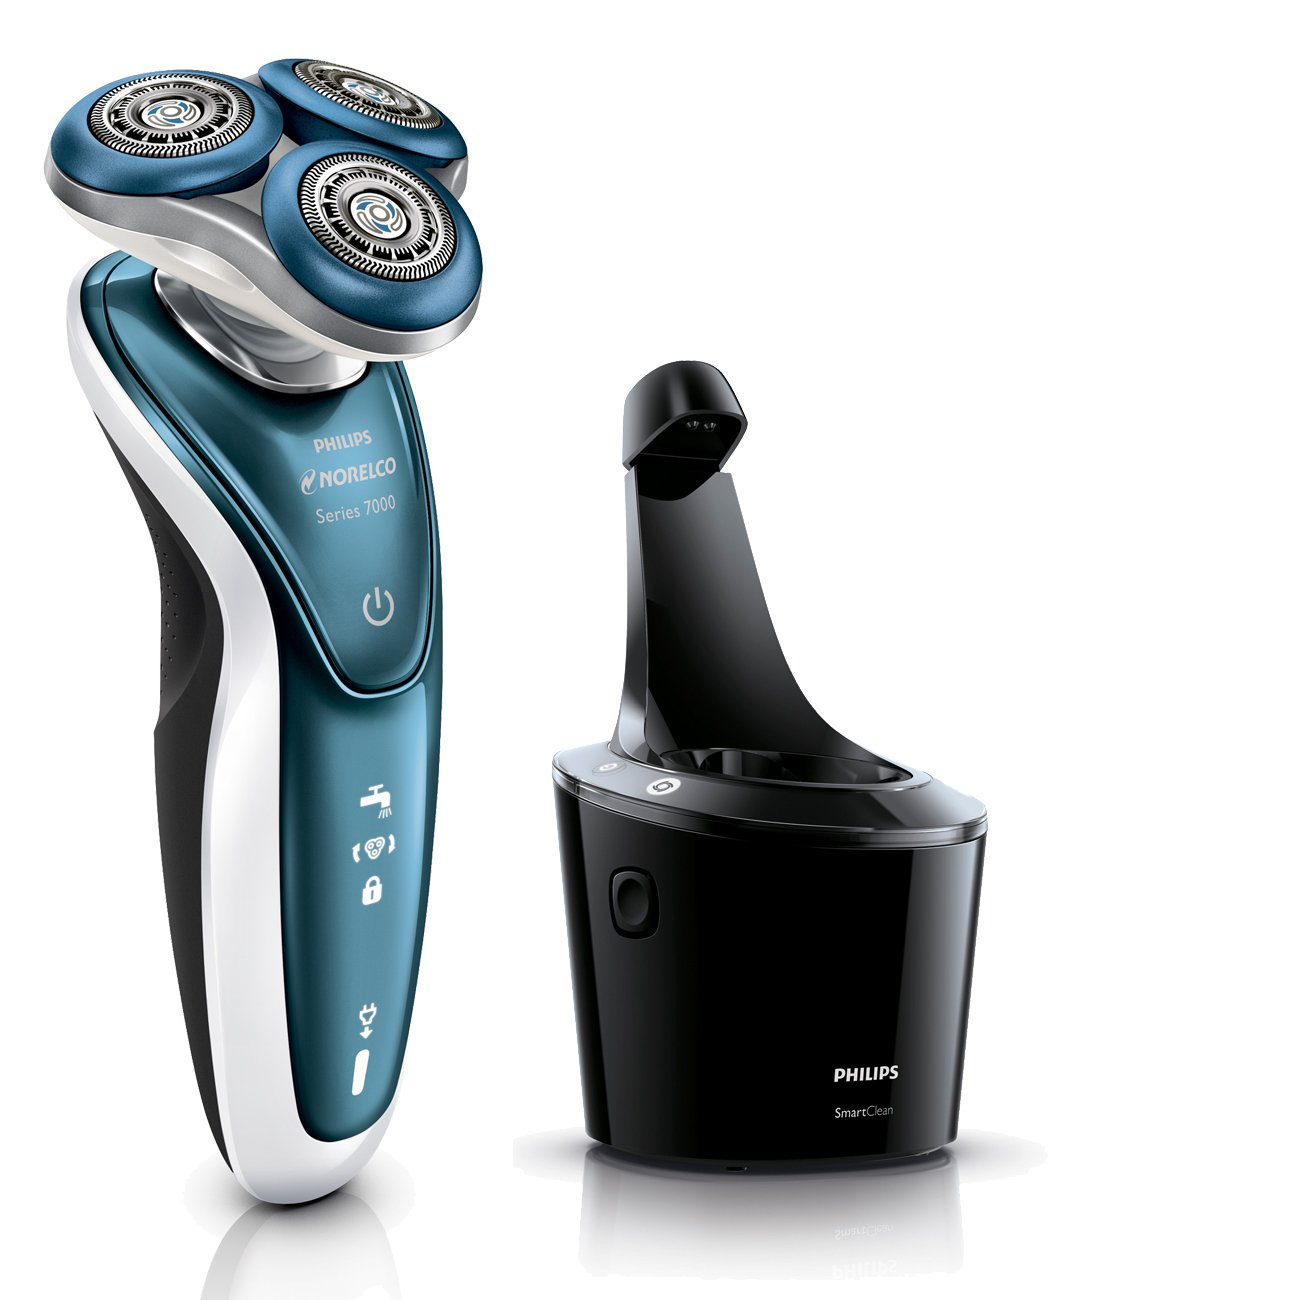 philips norelco s7370 84 7300 series shaver review. Black Bedroom Furniture Sets. Home Design Ideas